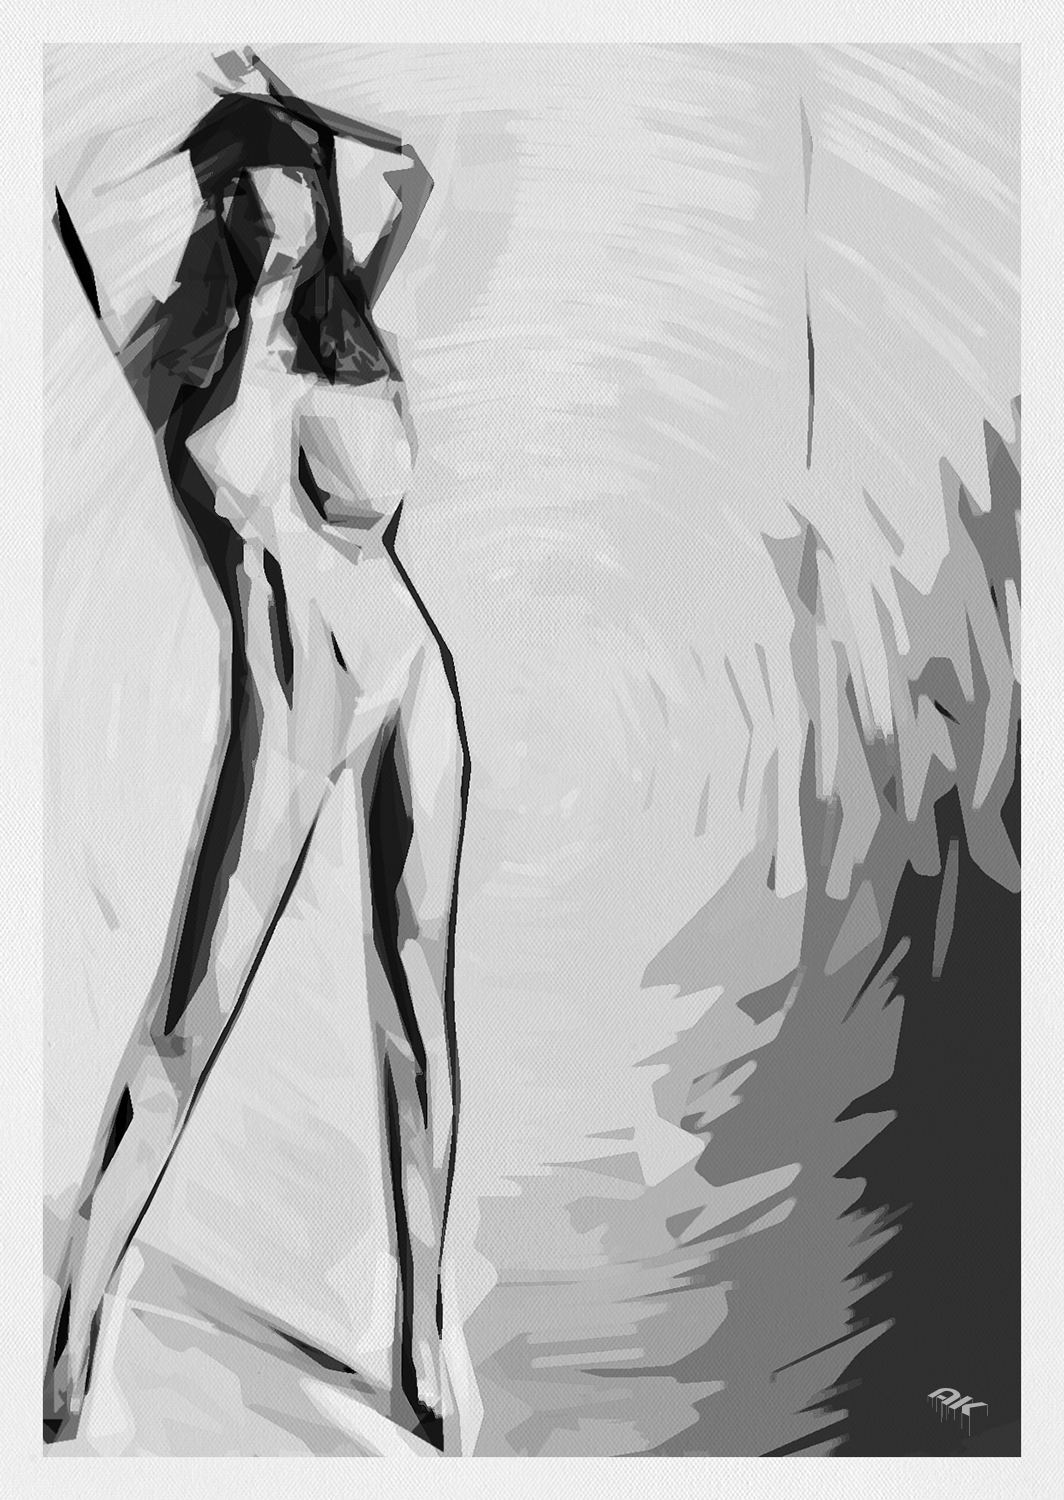 life-drawing-series-3-image-4-copyright-andrew-knutt